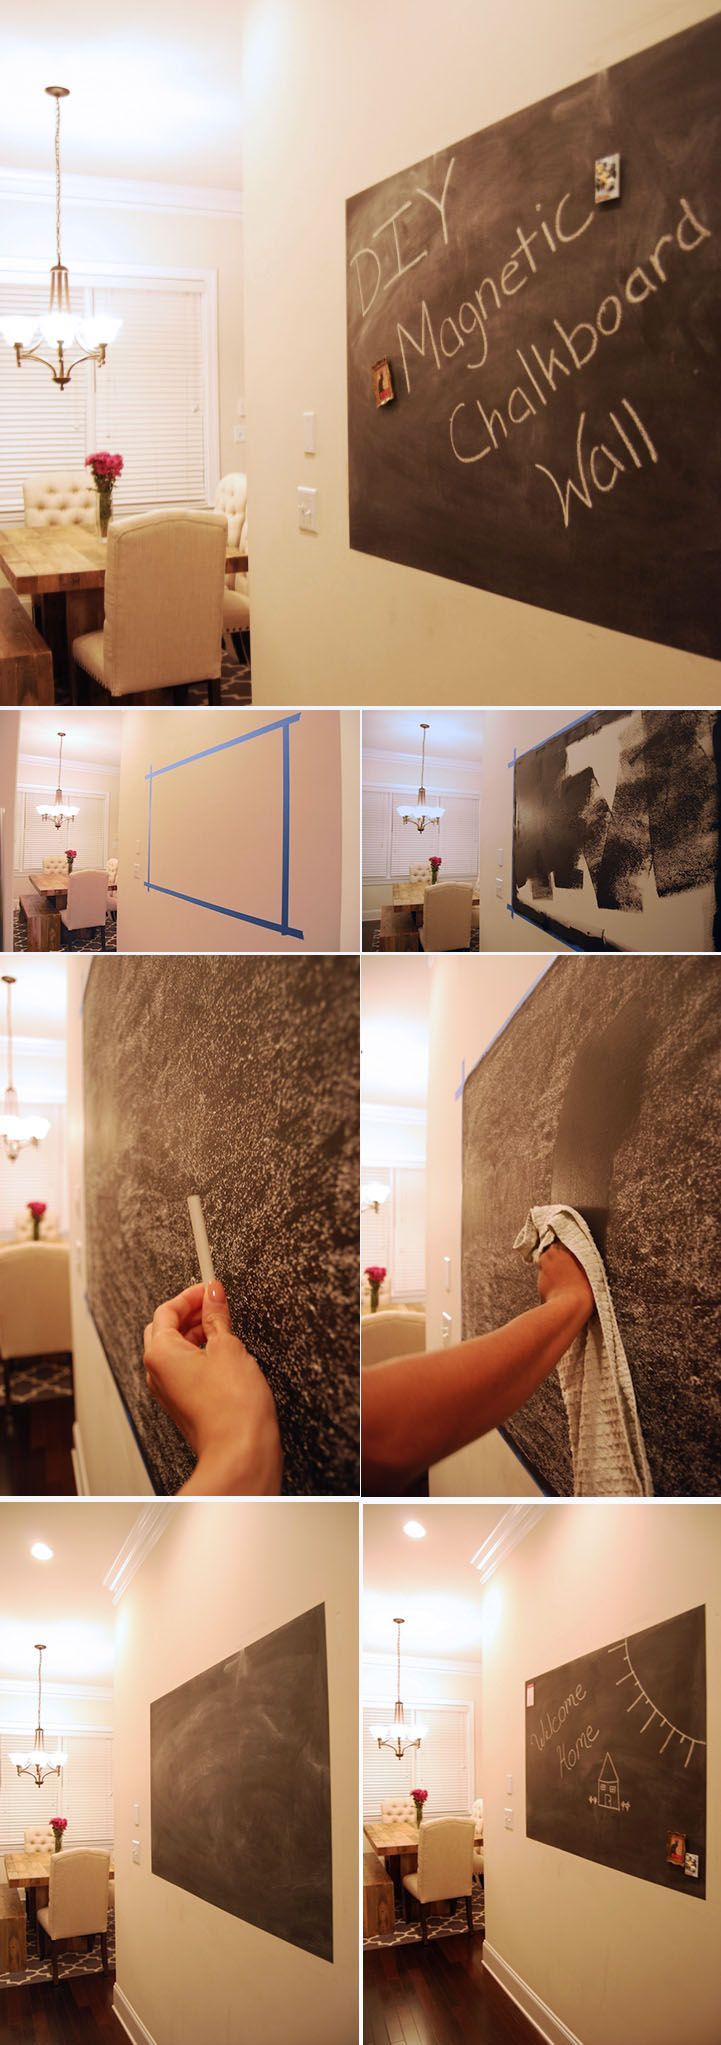 Best 25 chalkboard walls ideas on pinterest chalk board wall diy magnetic chalkboard wall the home depot community amipublicfo Gallery